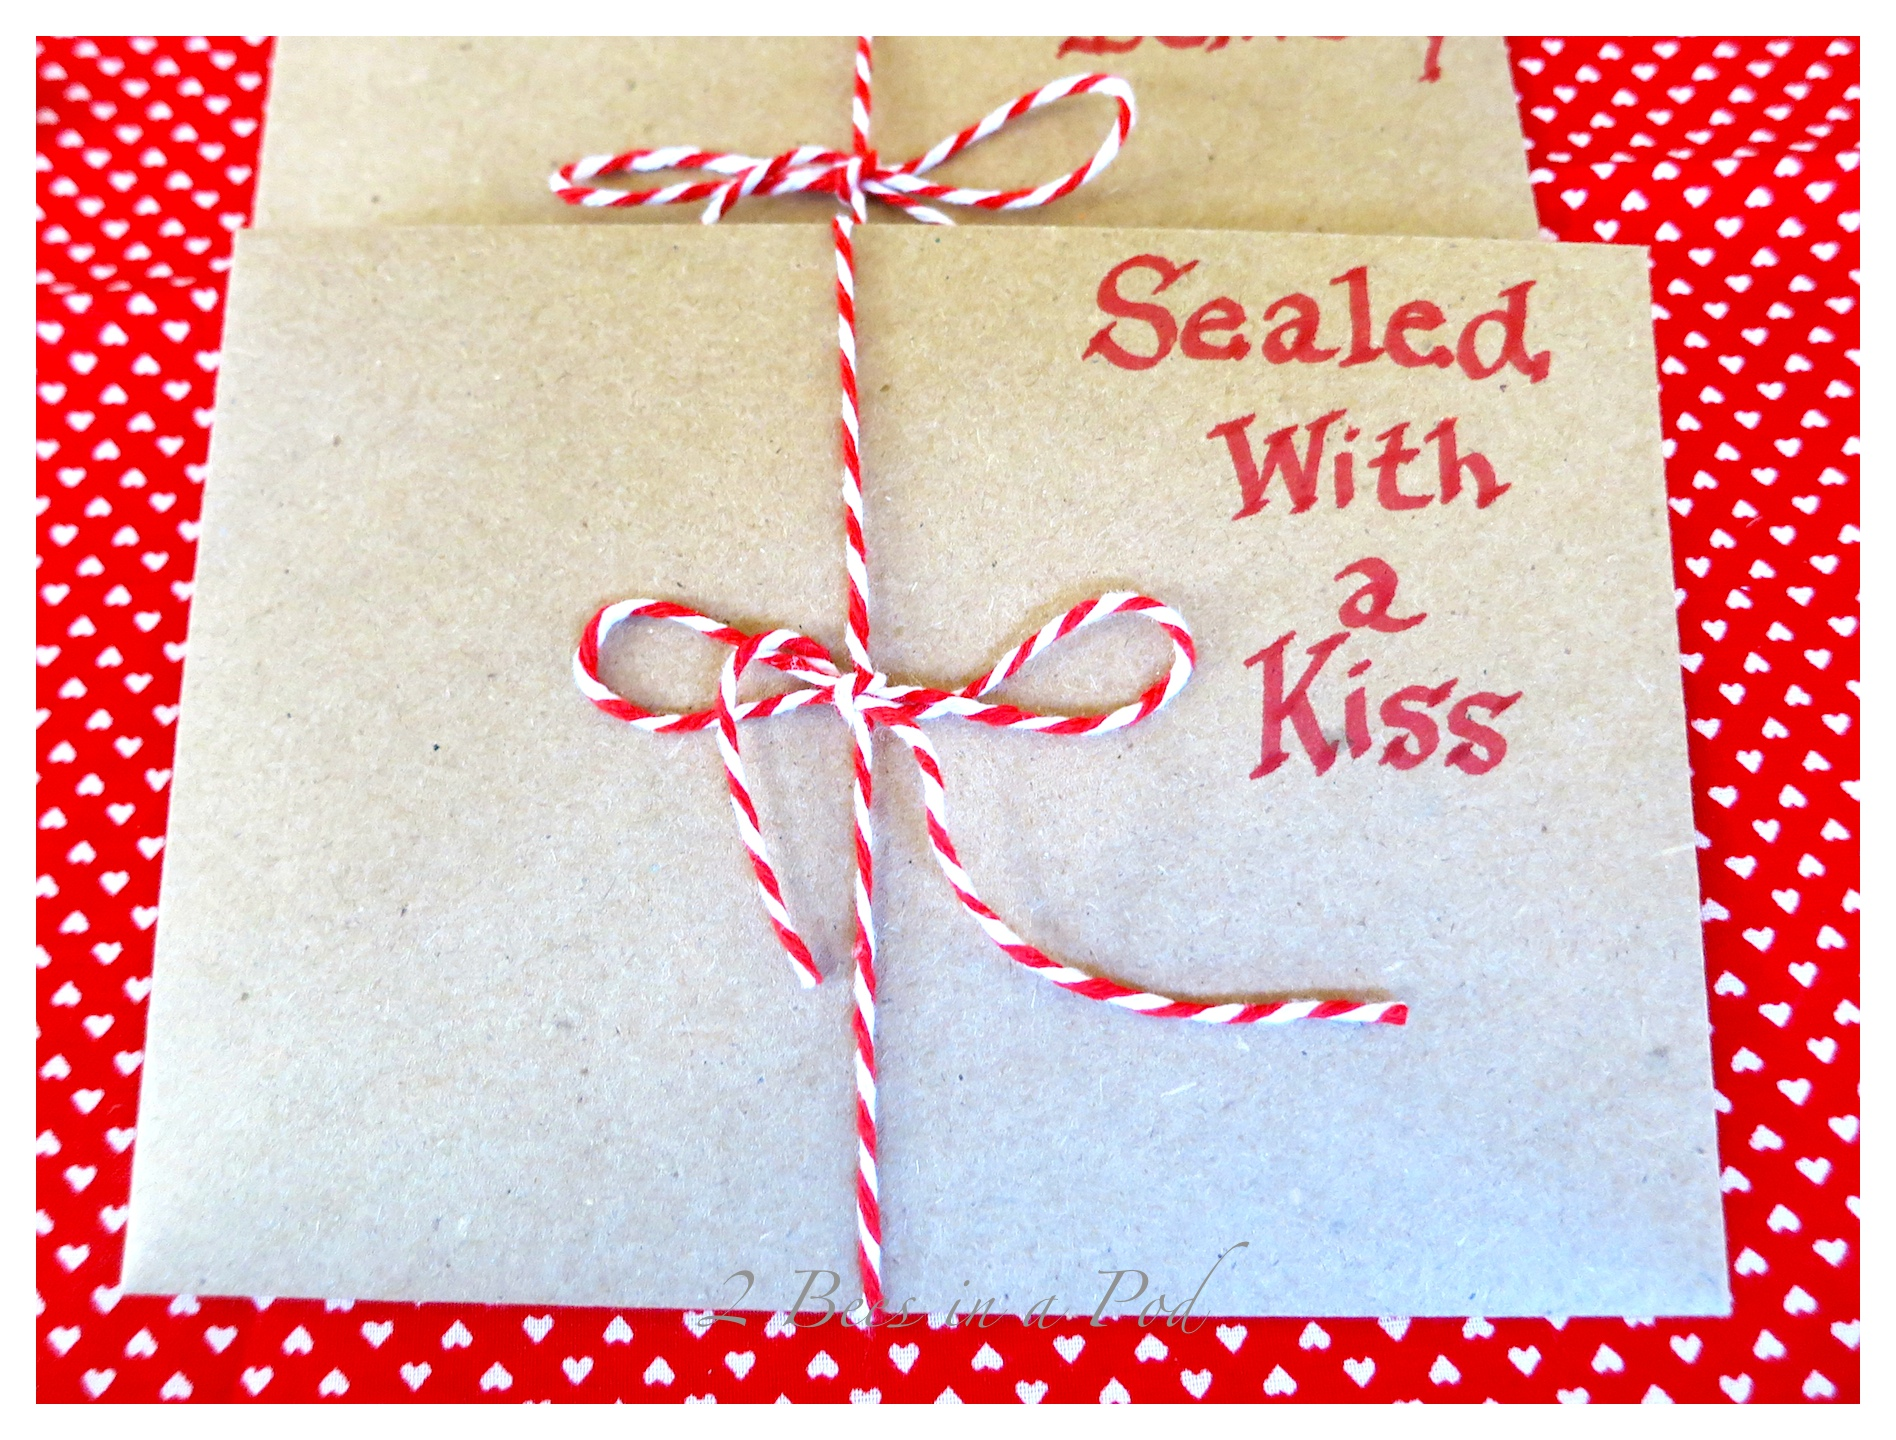 Handmade Valentines - it's fun to play a little and remember when you were a kid making Valentines